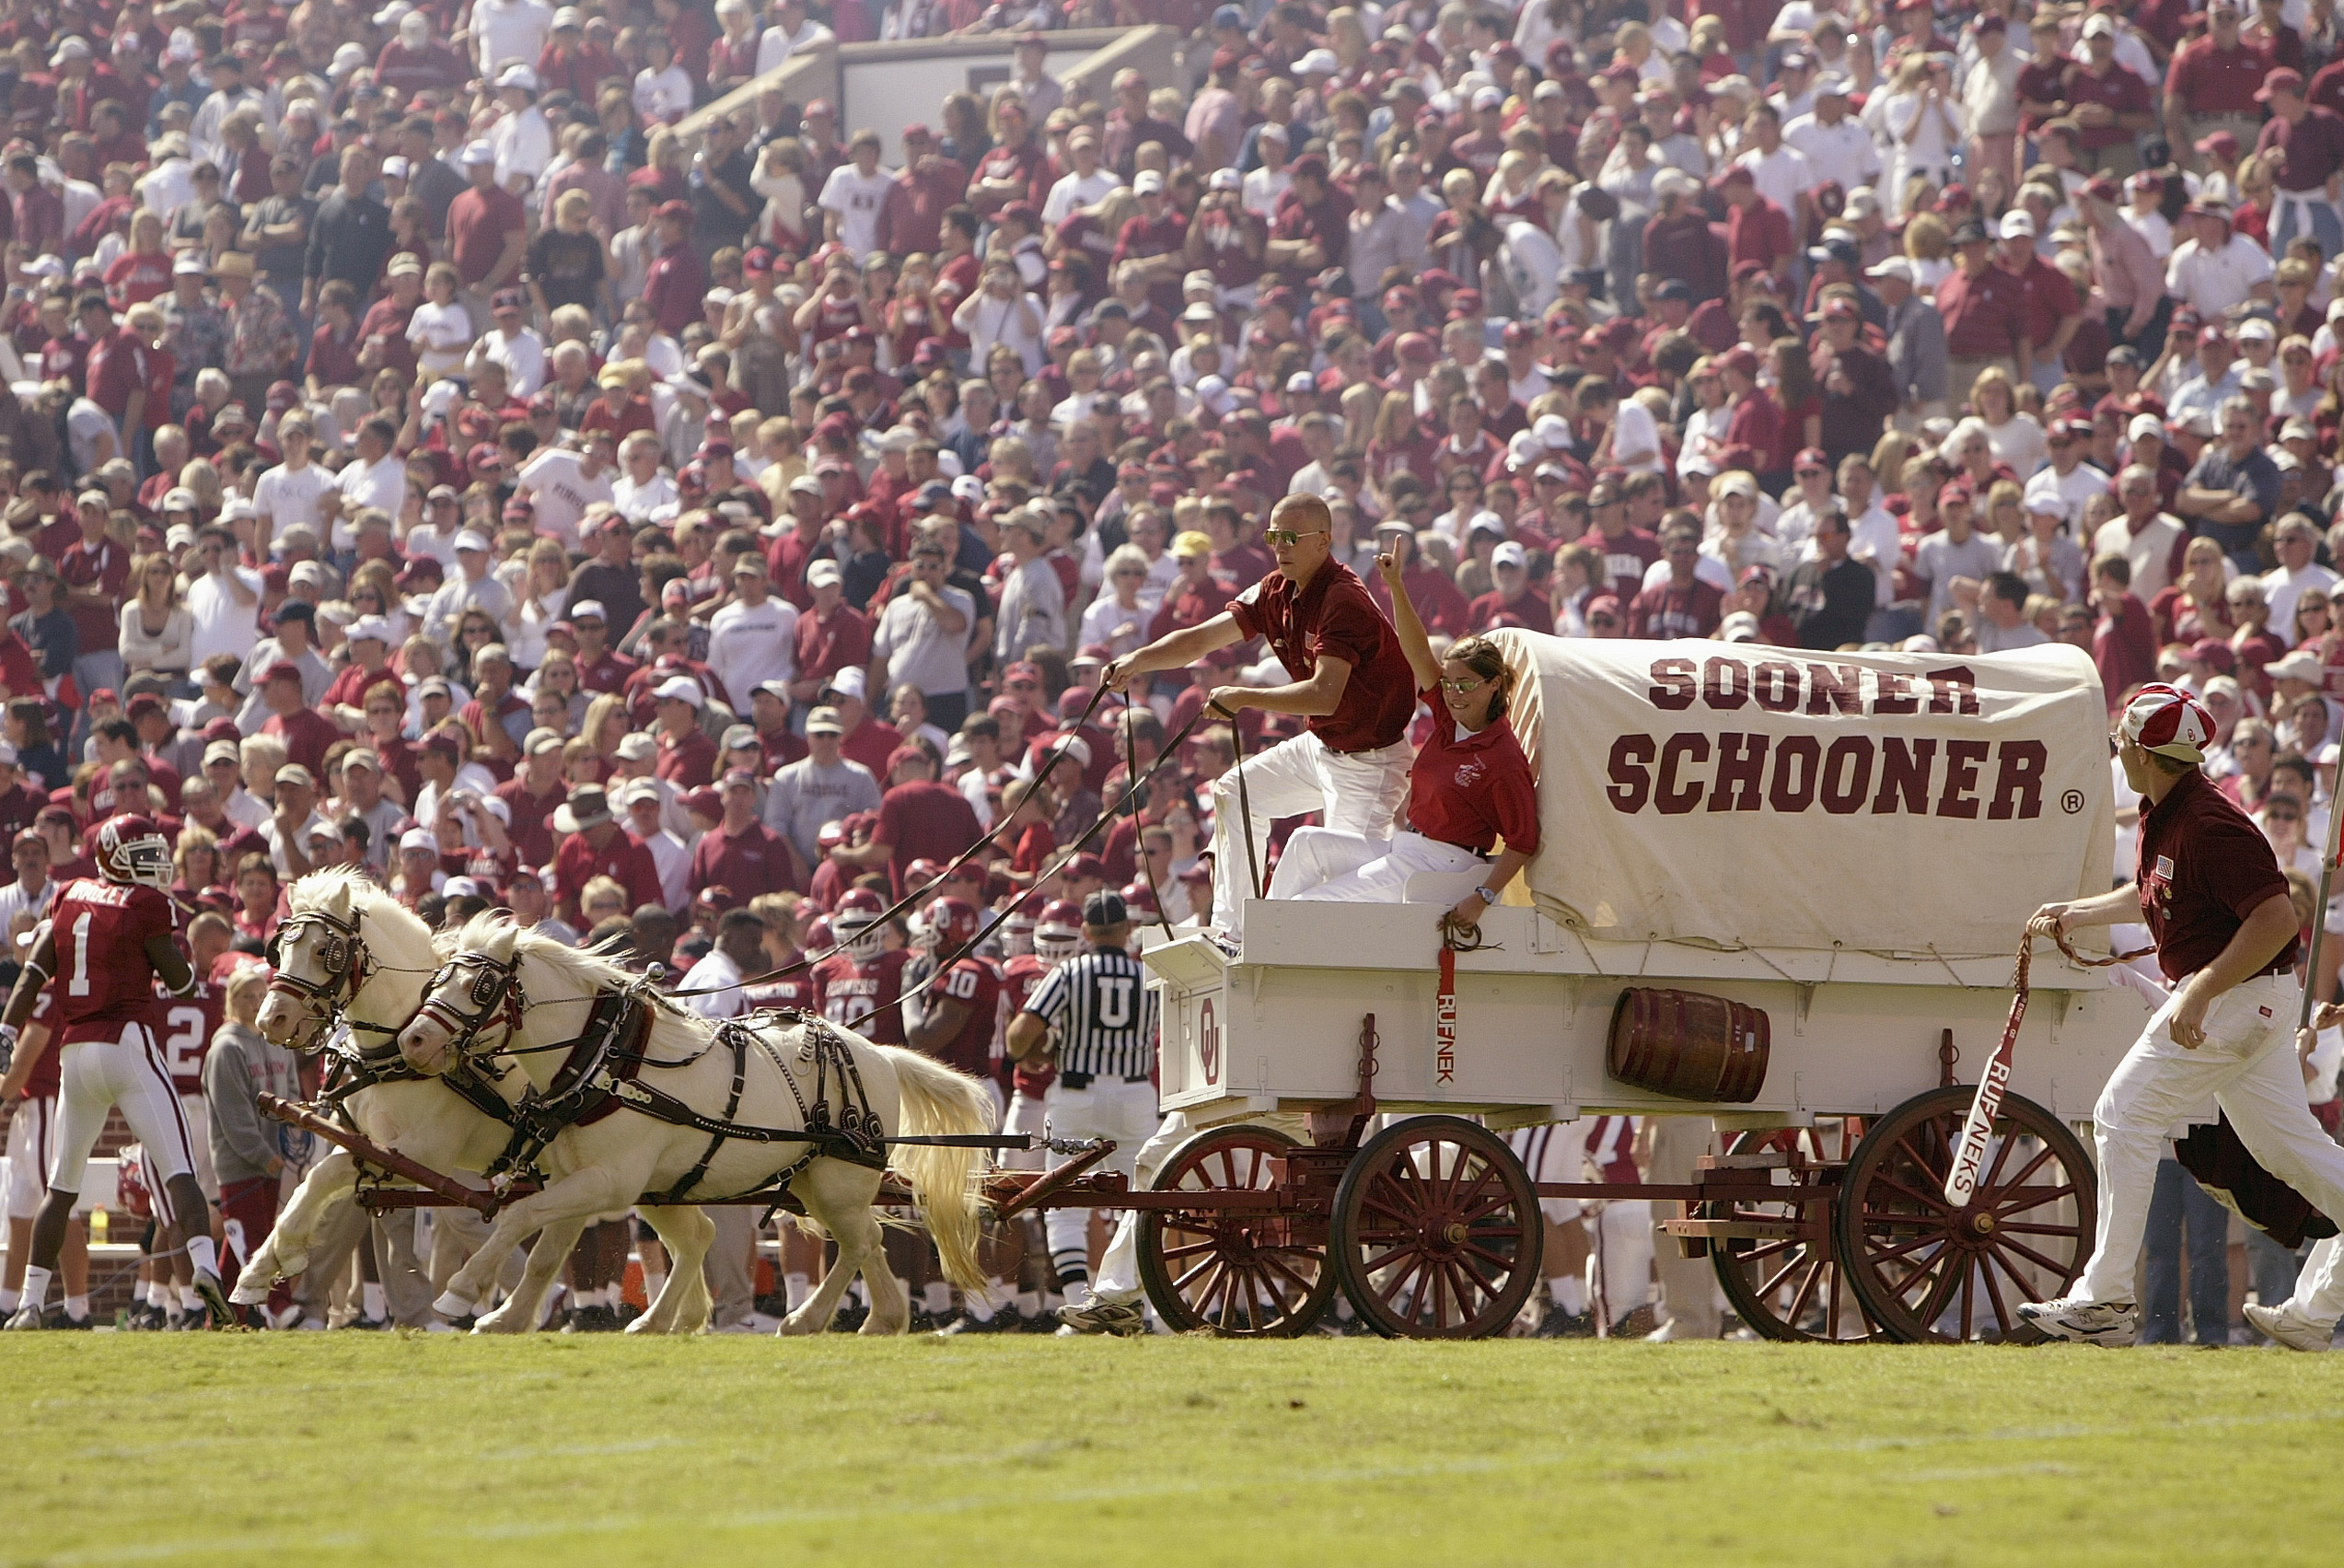 NORMAN, OK - OCTOBER 2:  The Oklahoma Sooner Schooner travels across the field before the football game against Texas Tech Red Raiders on October 2, 2004 at Memorial Stadium in Norman, Oklahoma.  The Sooners defeated the Red Raiders  28-13.  (Photo by Bri